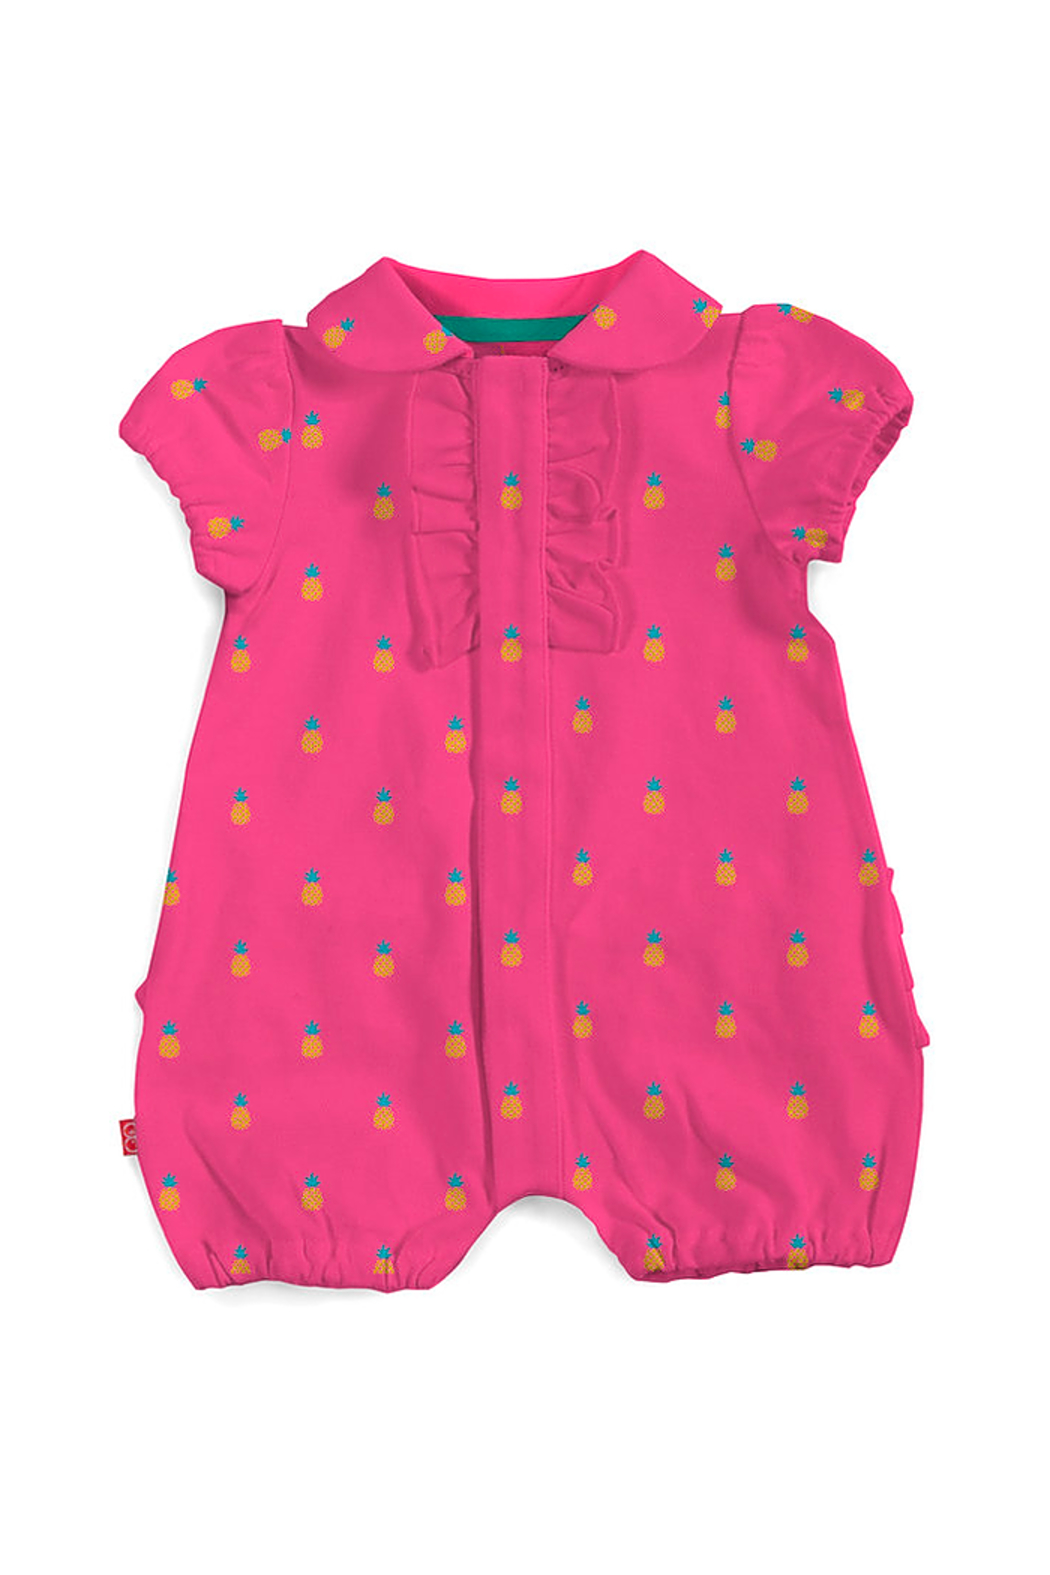 Magnetic Me Pineapples Romper 9-12 - Main Image